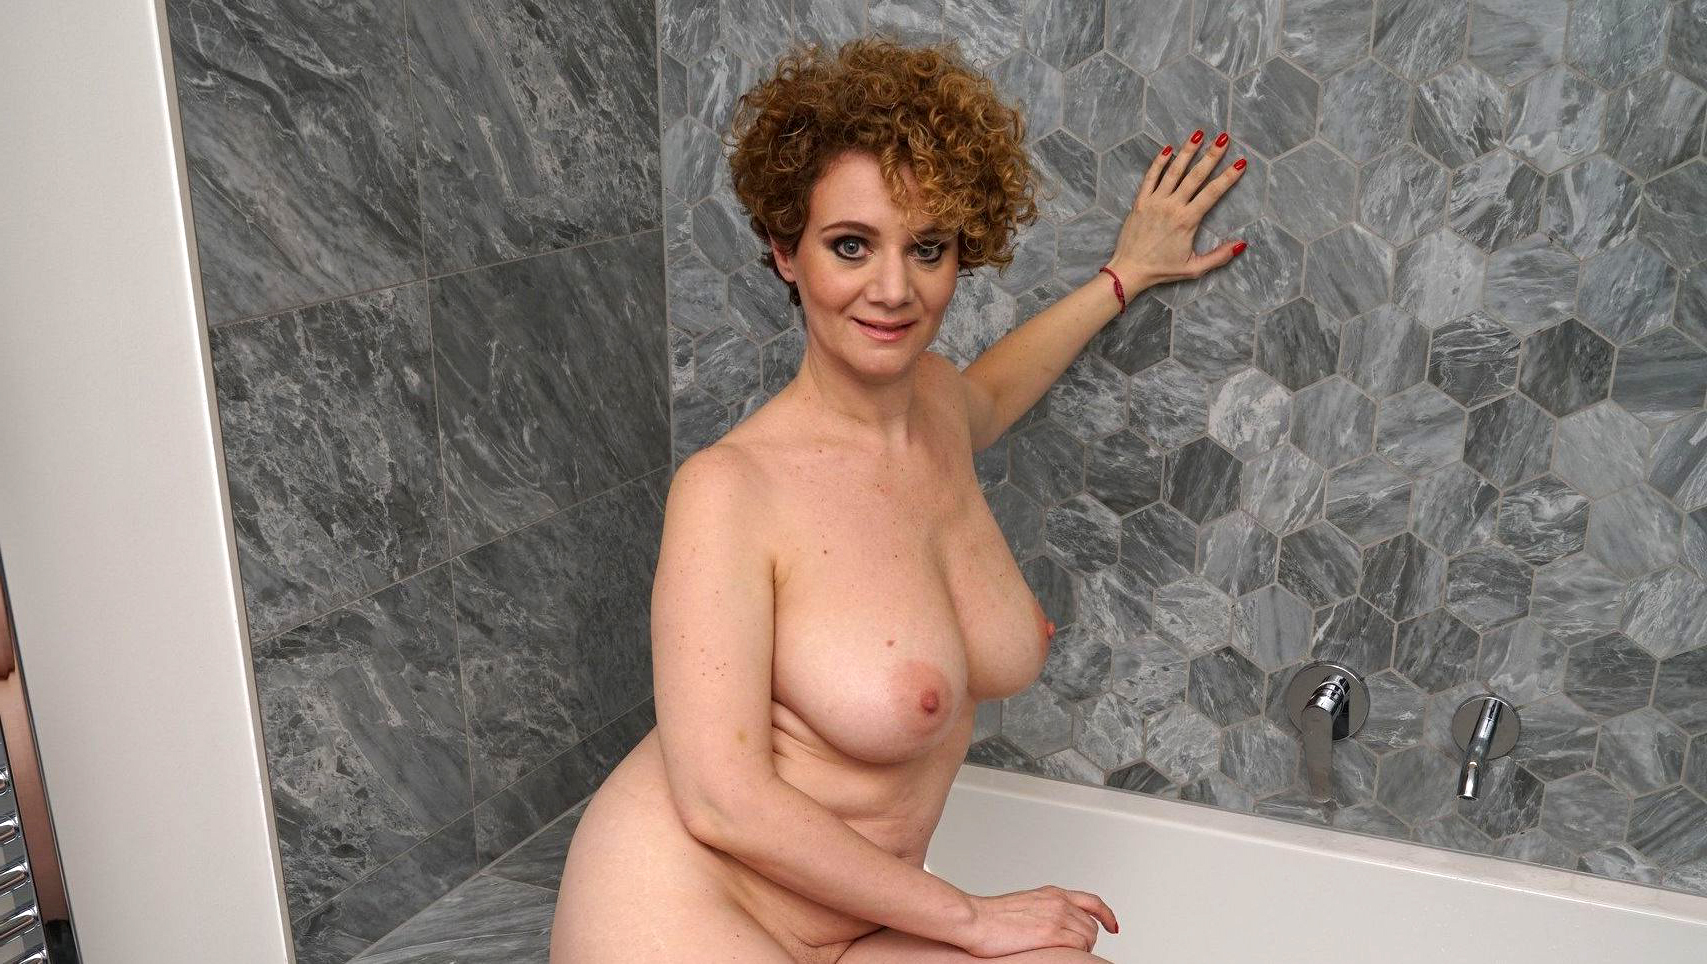 Adult women of pictures naked Women Reveal